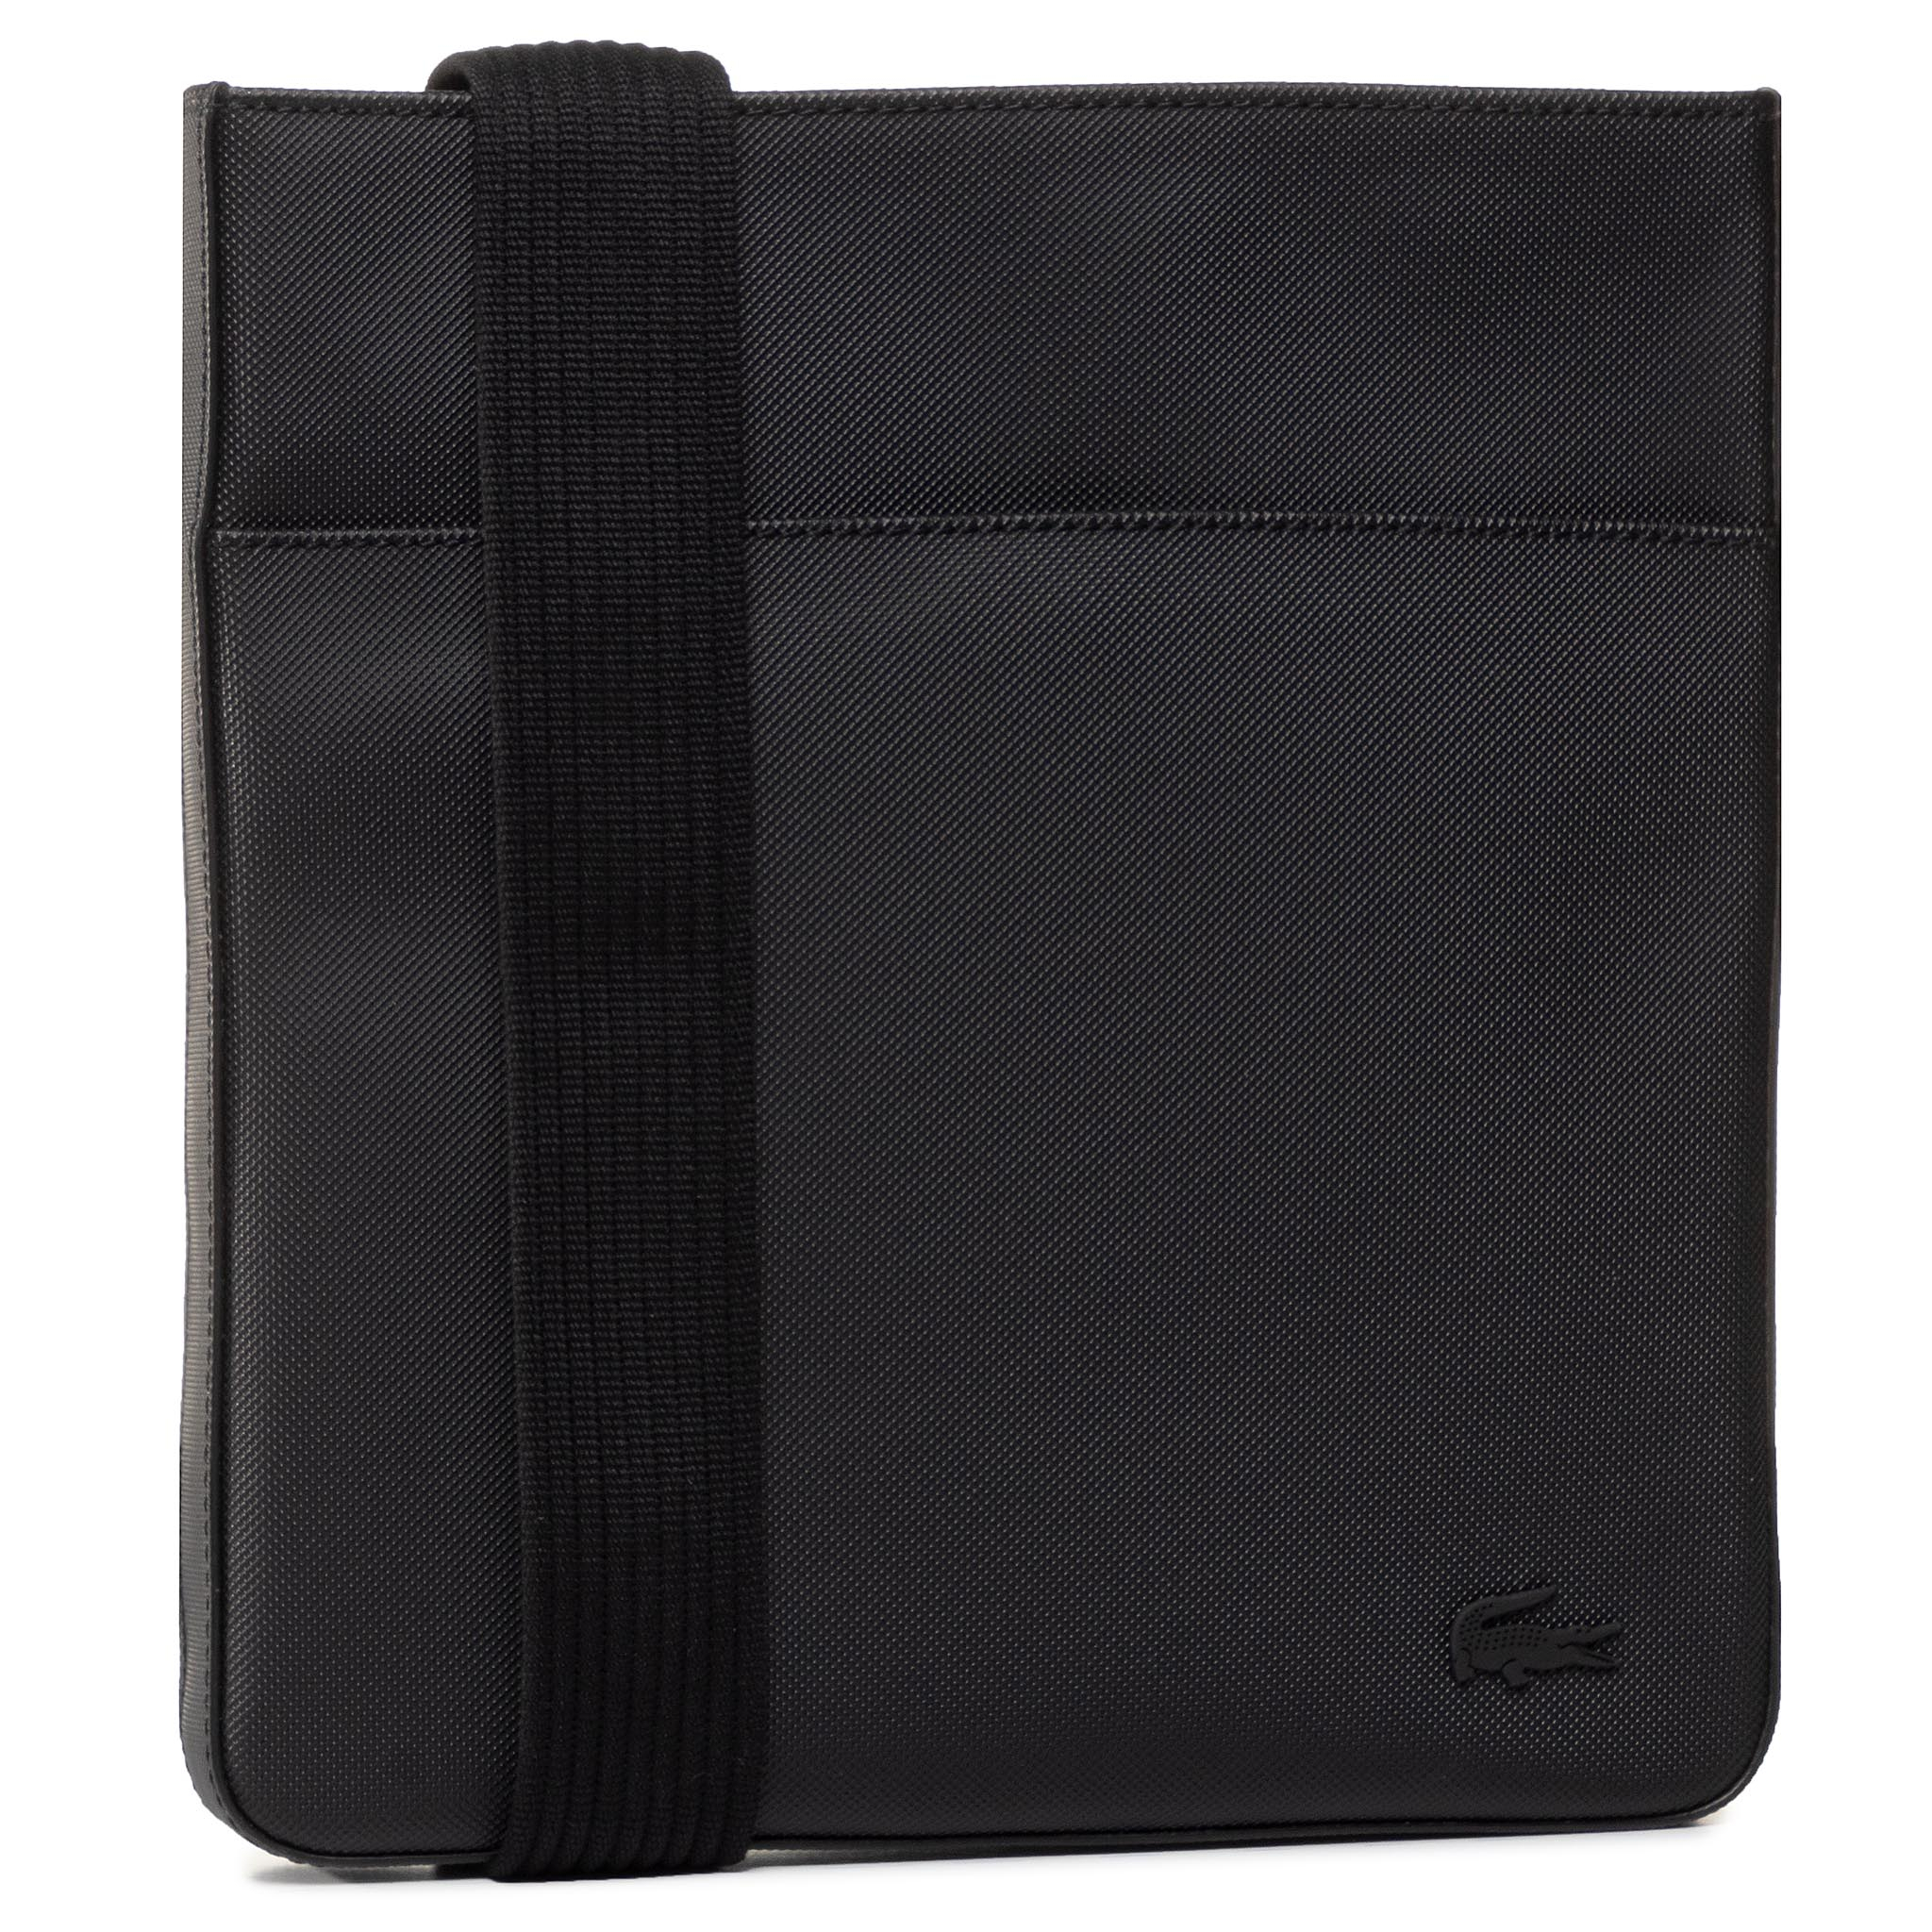 Geantă Crossover Lacoste - Flat Crossover Bag Nh2850hc Black 000 imagine